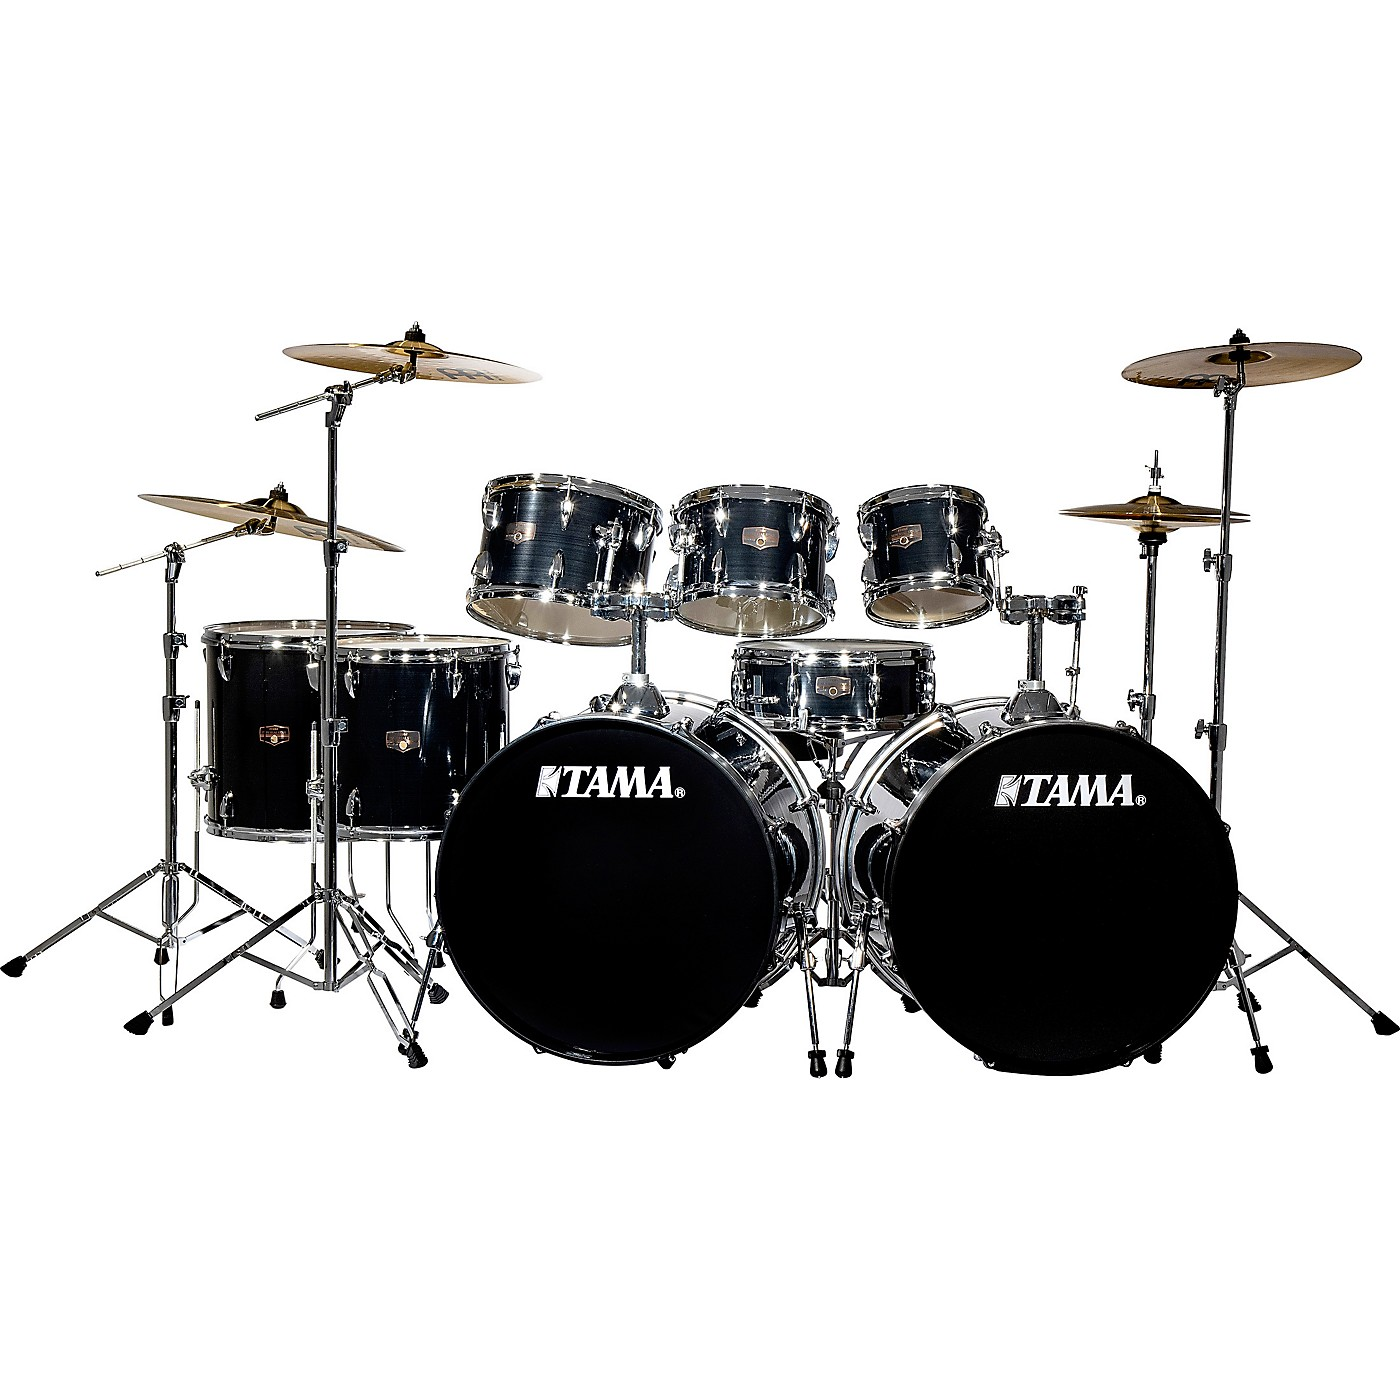 TAMA Imperialstar 8-Piece Double Bass Drum Set with MEINL HCS Cymbals thumbnail